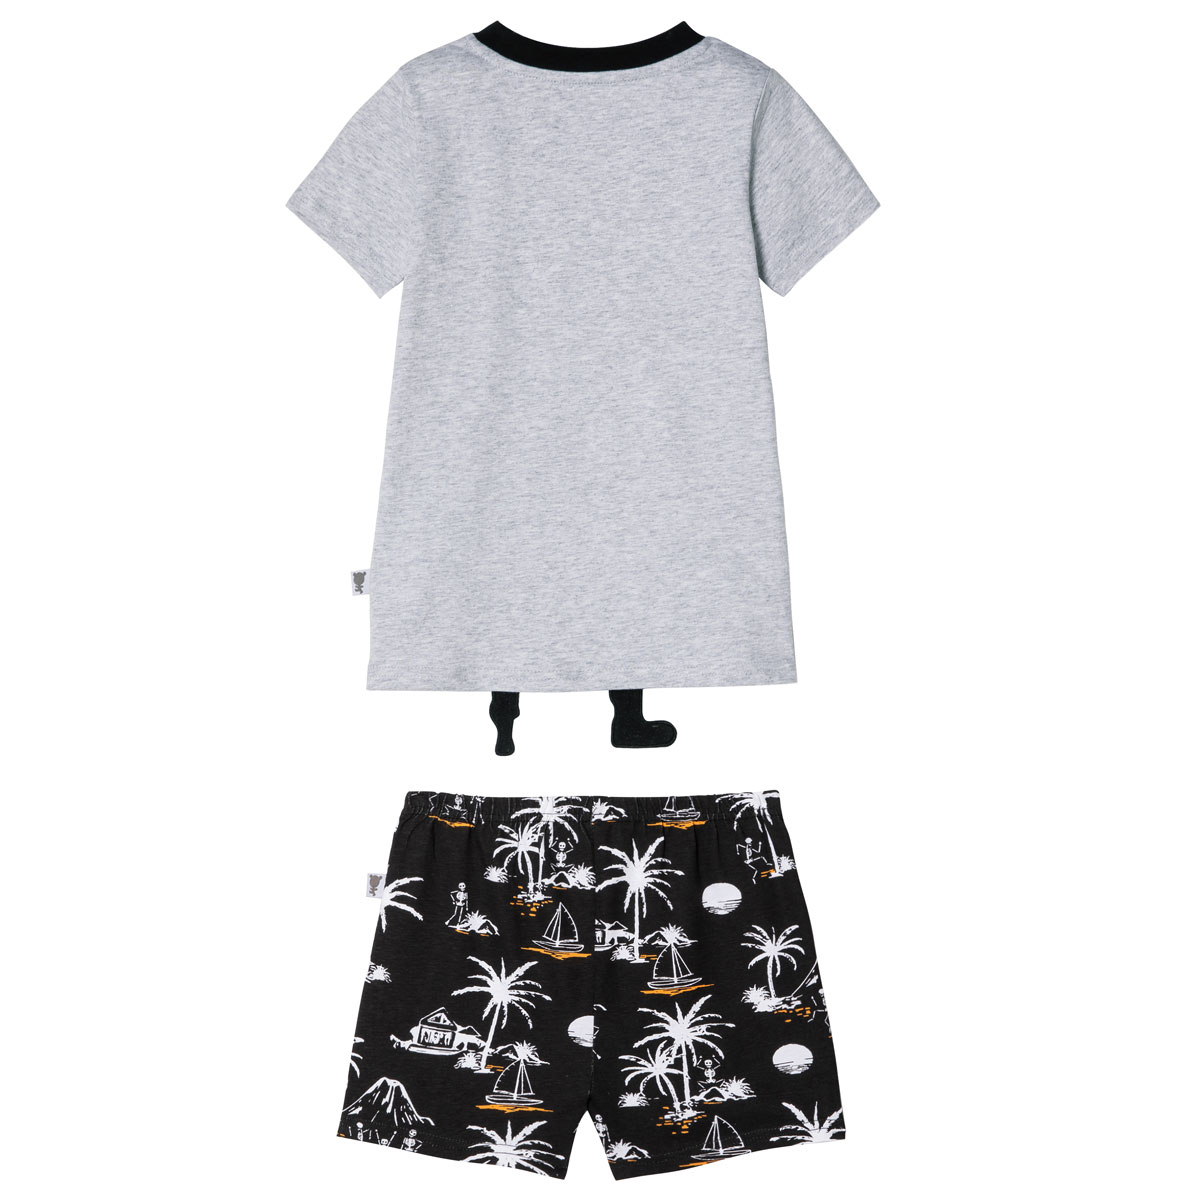 pyjama-t-shirt-short-2-pieces-enfant-garcon-explorateur-dos